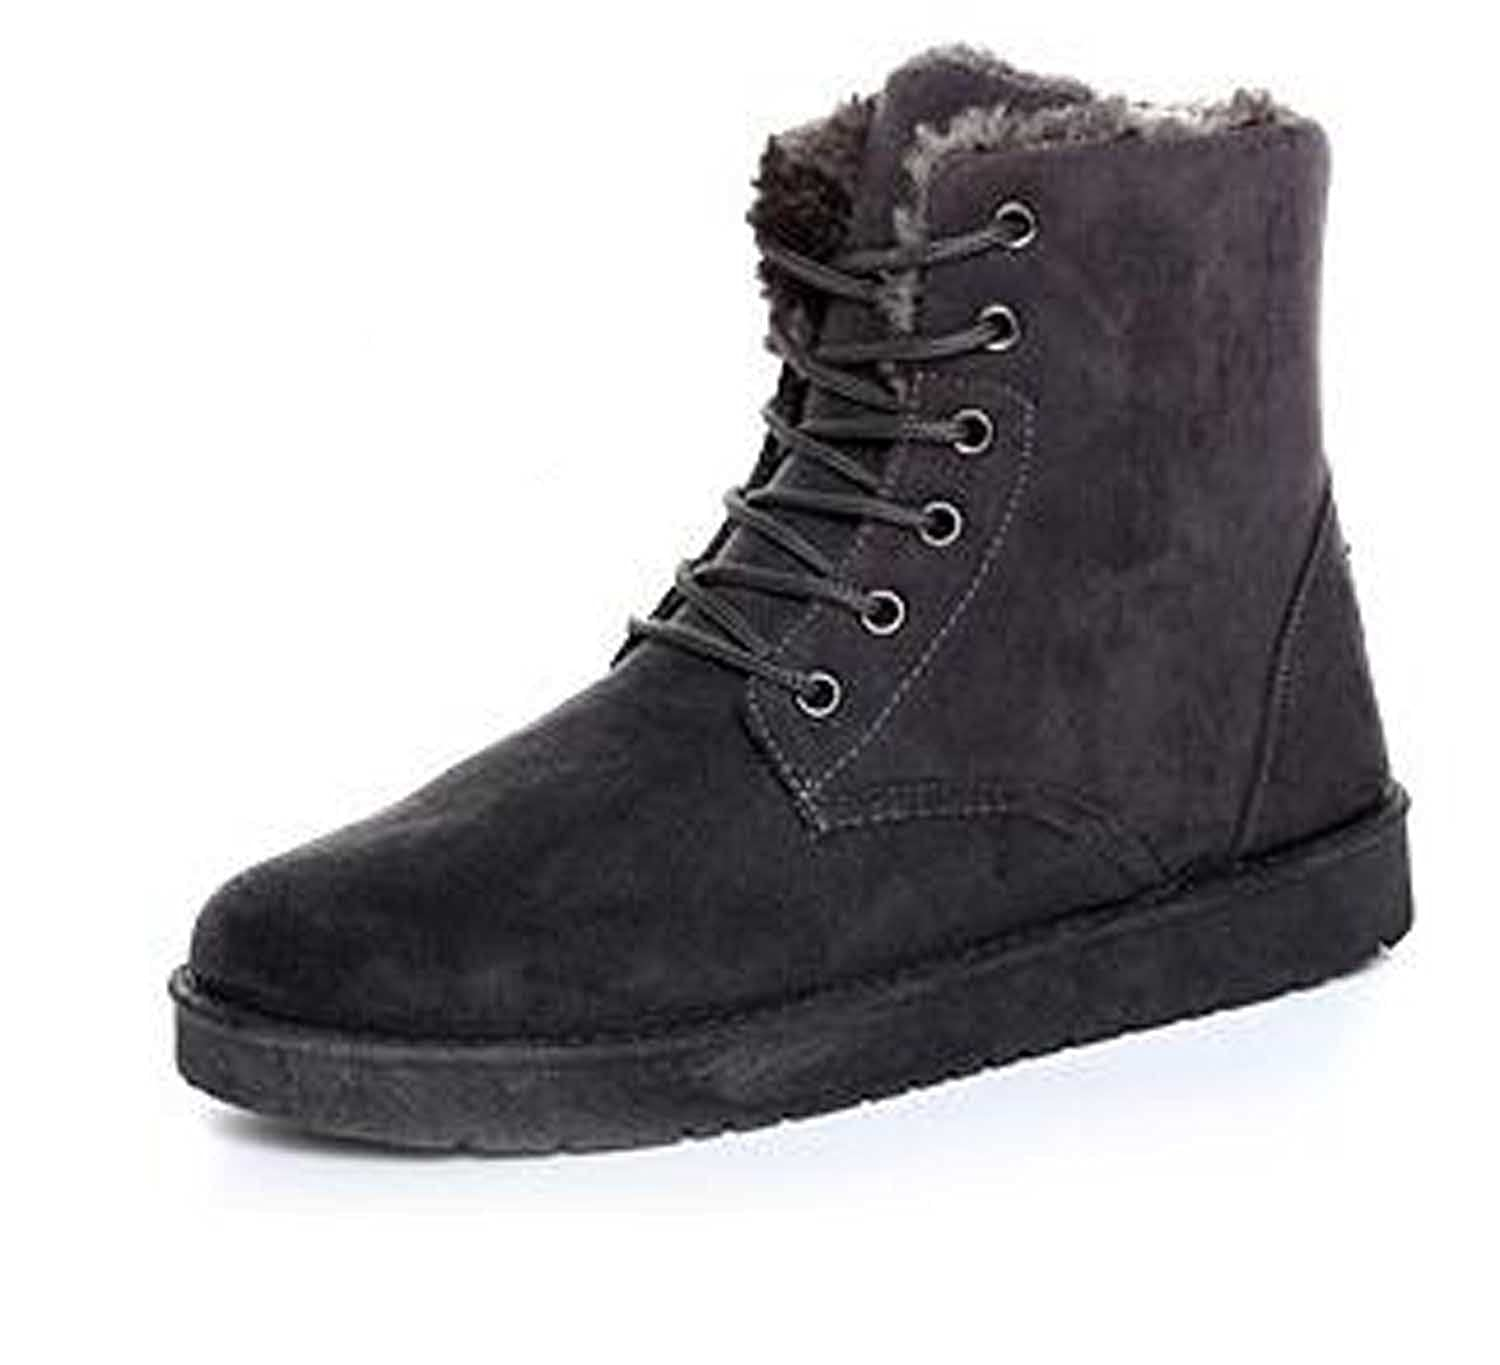 Upsale Mens Classic Short Ankle Solide Laceup Fabric Winter Snowboots Travelshoes